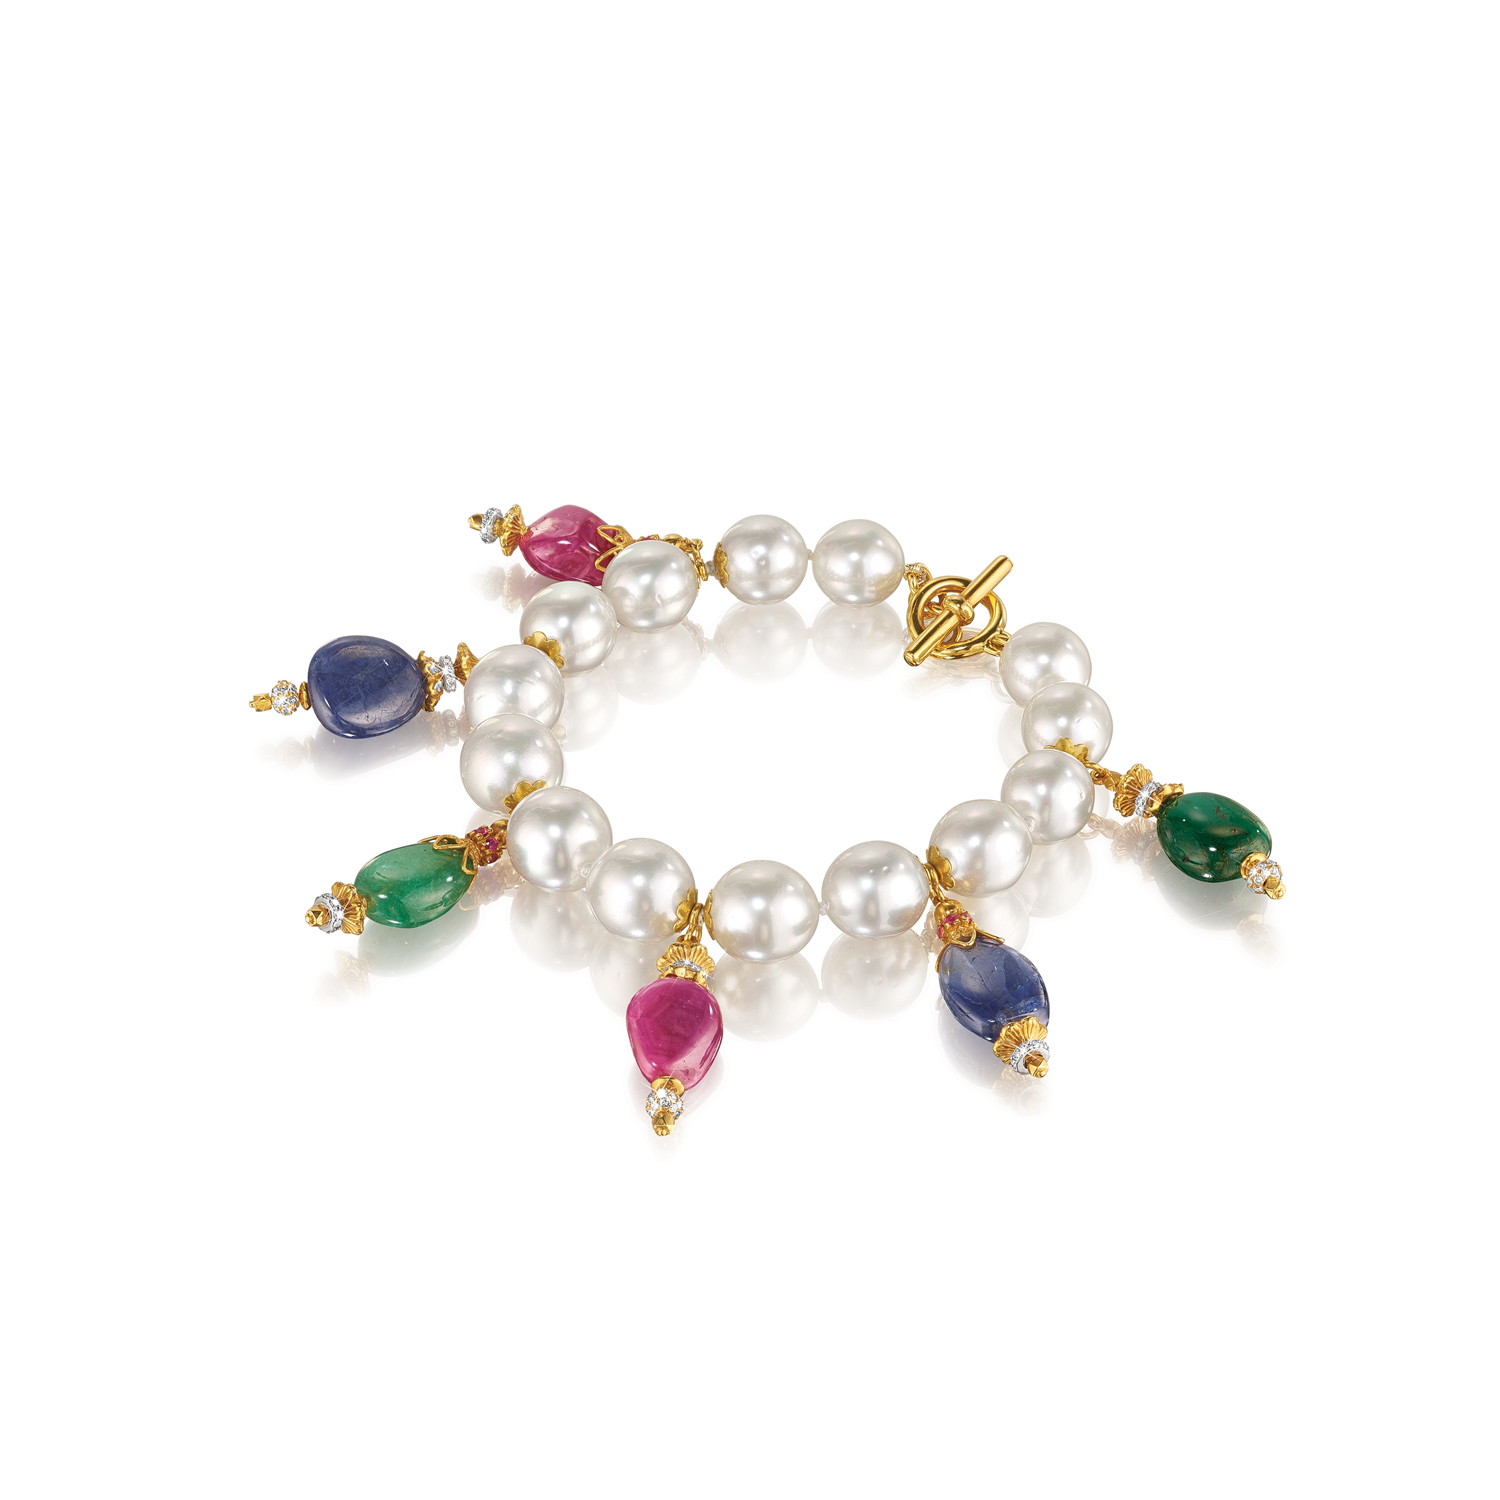 Inspired by the richly hued mosaics and gold-encrusted treasures of the Byzantine Empire, Verdura set gems into gold like tiles, mixing precious and semi-precious stones in various colors and cuts. South Sea cultured pearl, sapphire, emerald, ruby, diamond, gold and sterling silver